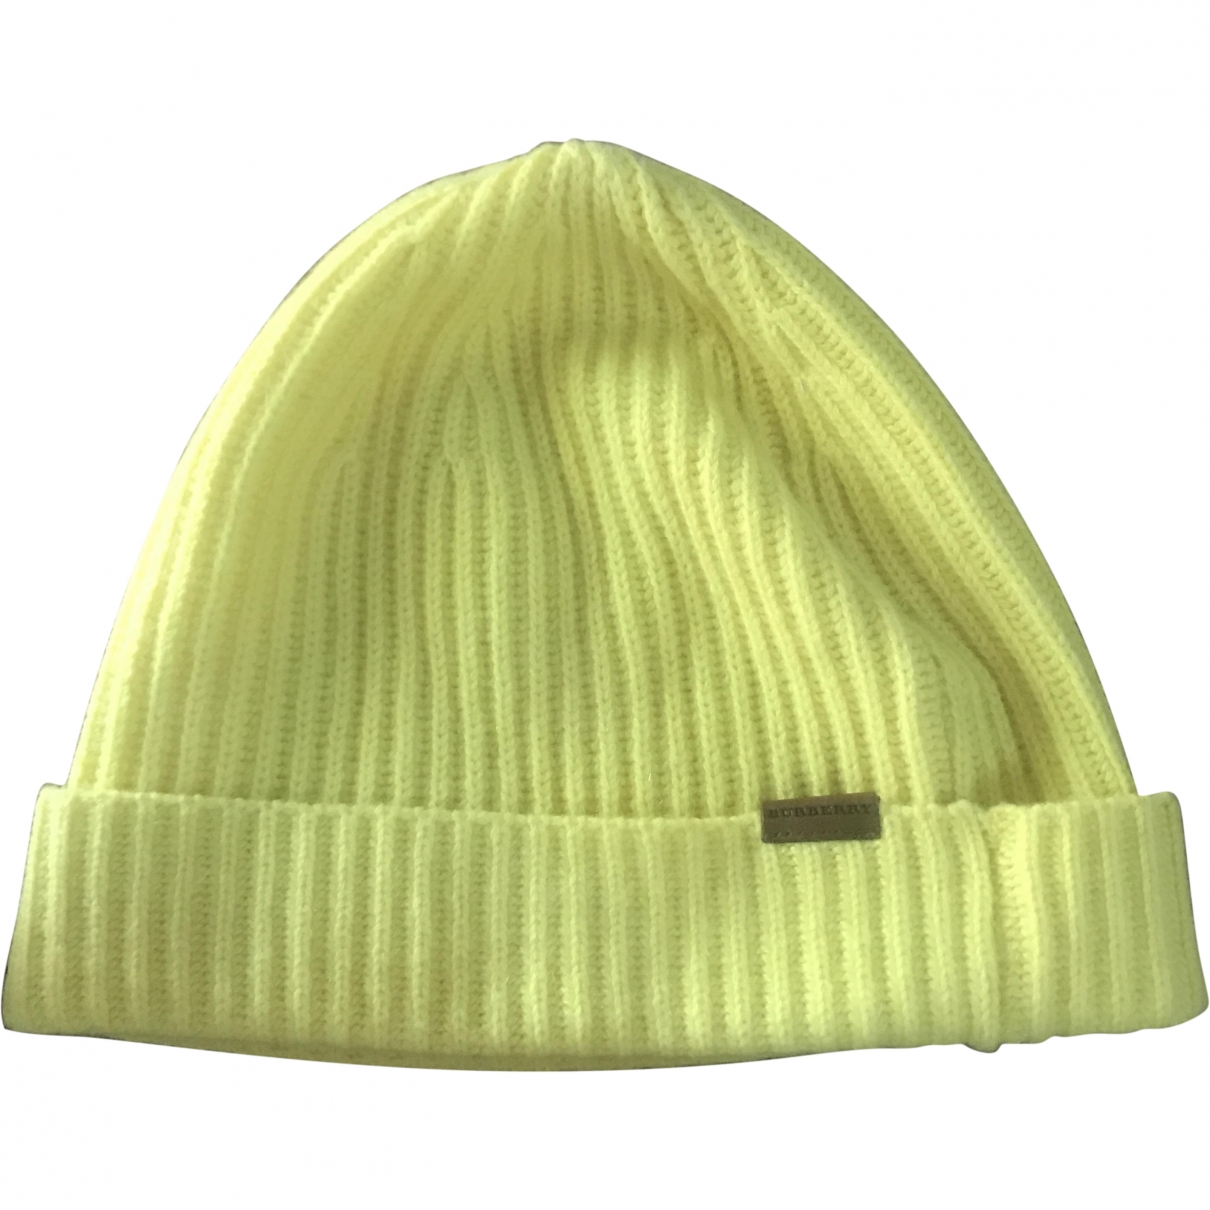 Burberry \N Yellow Cashmere hat for Women XS International